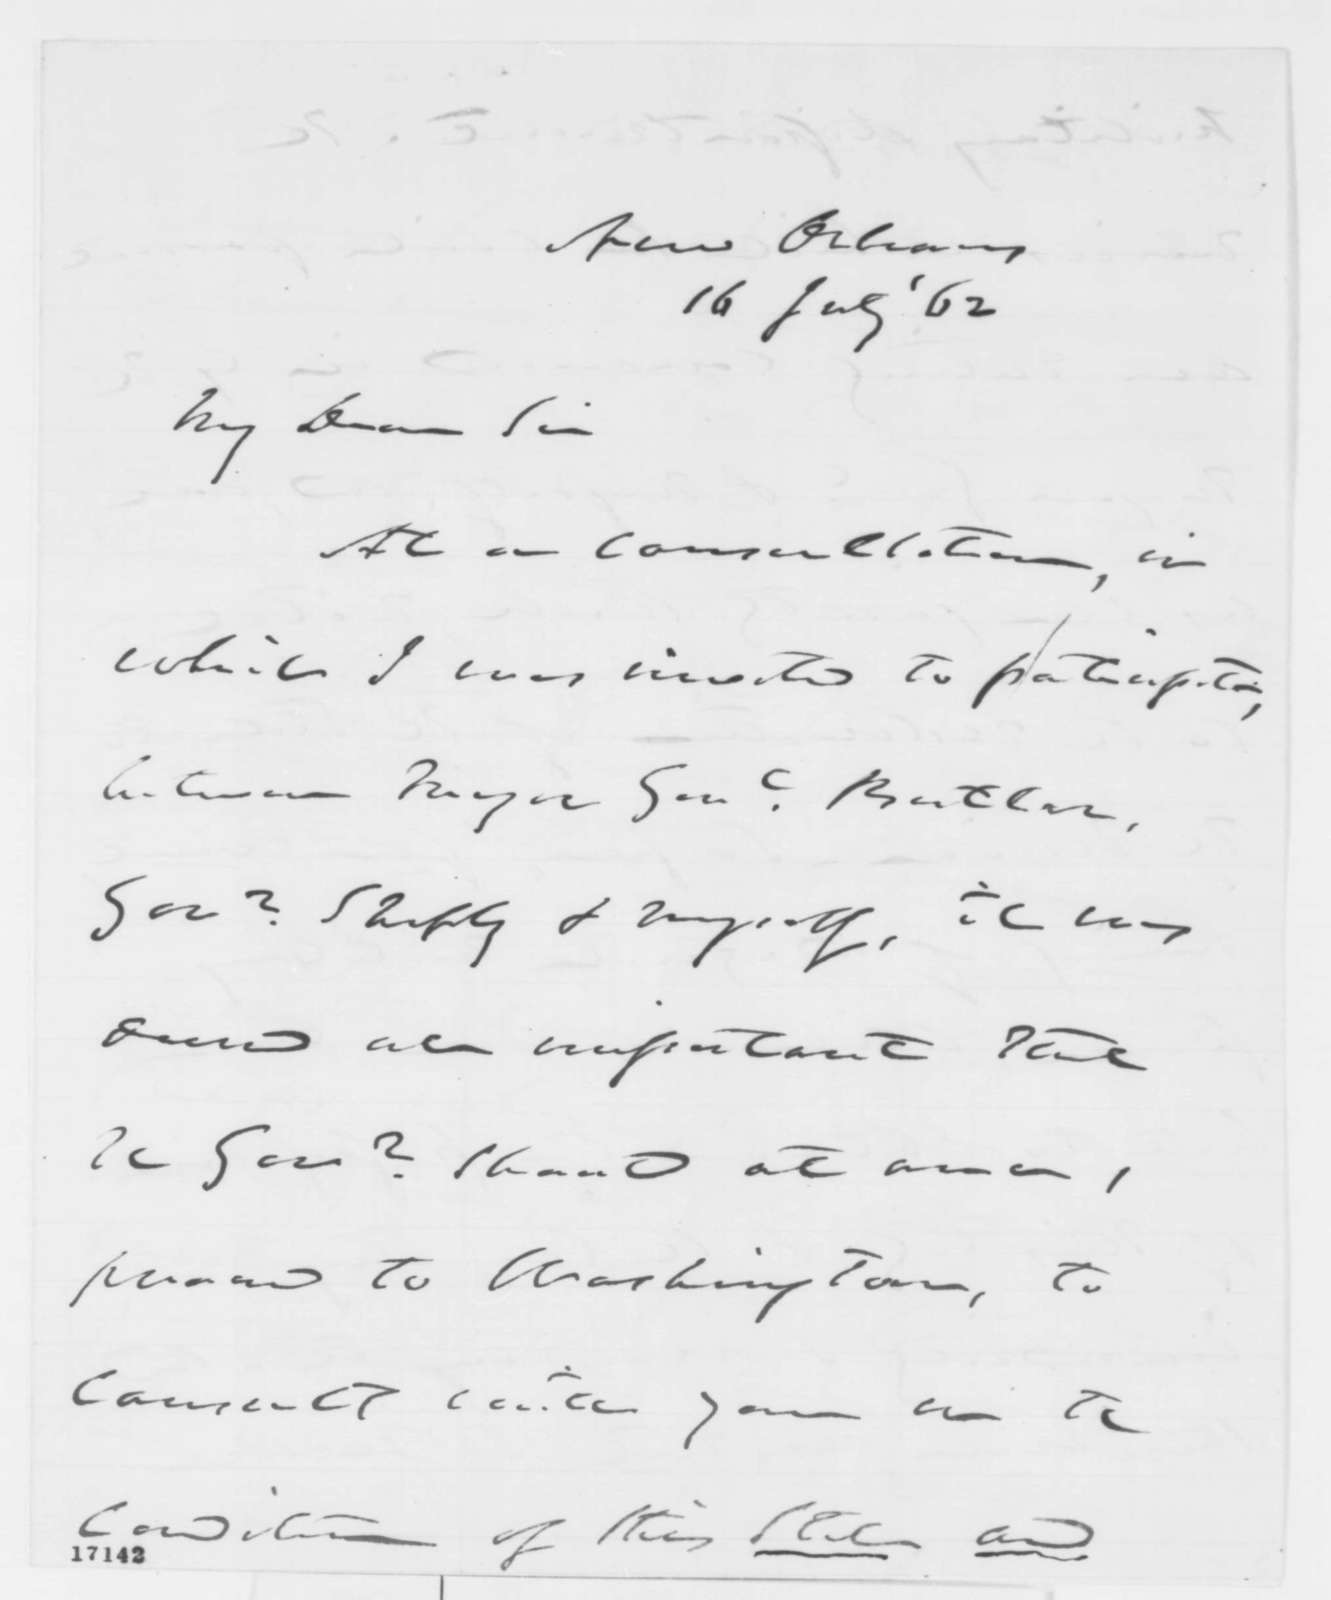 Reverdy Johnson to Abraham Lincoln, Wednesday, July 16, 1862  (Affairs in New Orleans)